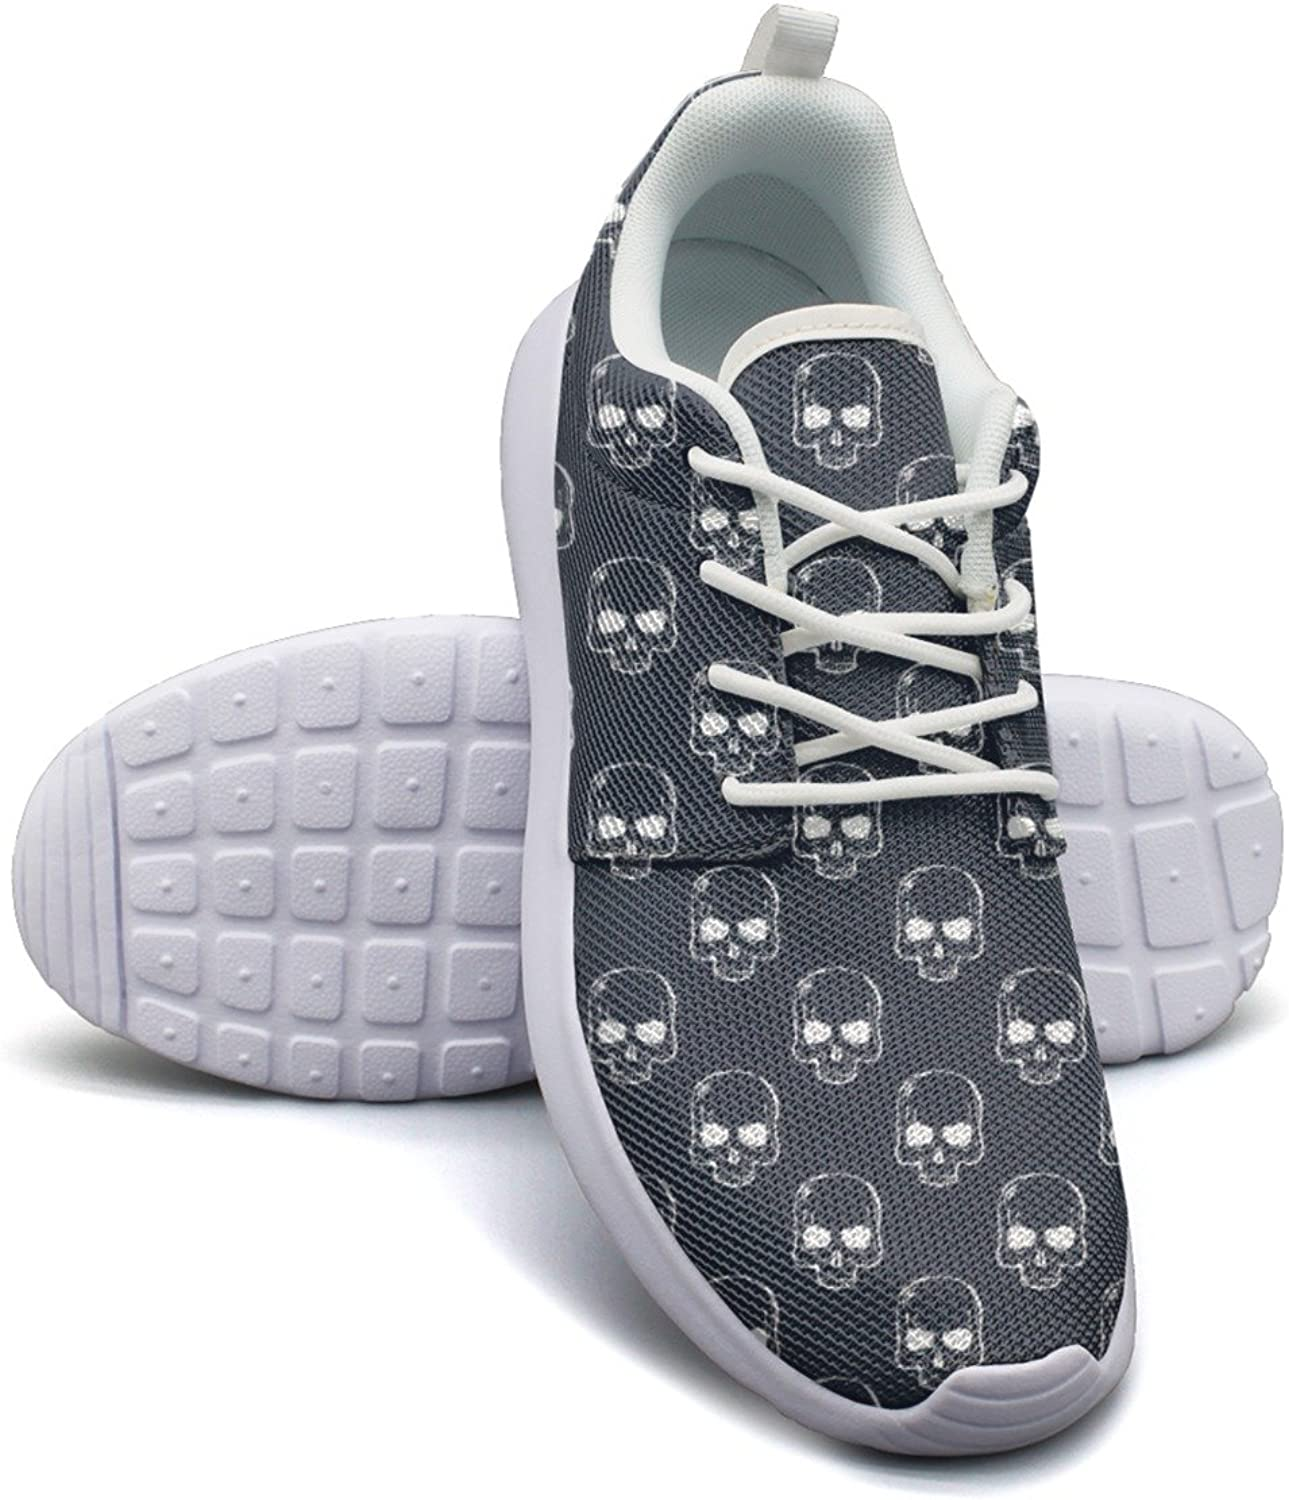 Skull Print Breathable Running shoes Women size 9